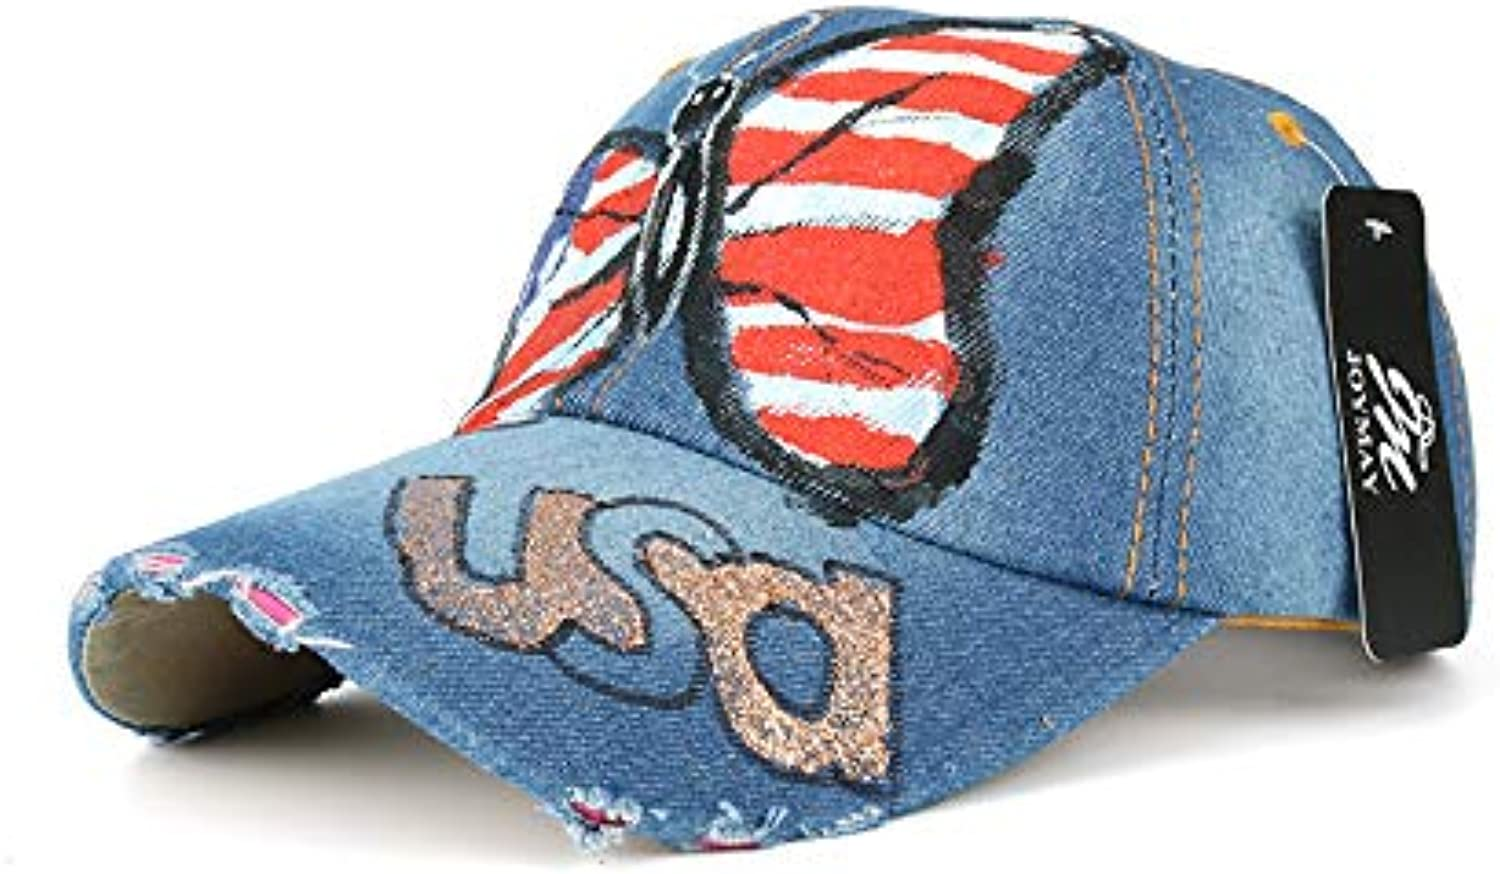 AAMOUSE Baseball Cap Butterfly USD Painting Jean Baseball Cap Adjustable Hip Hop Cap Leisure Casual Snapback HAT